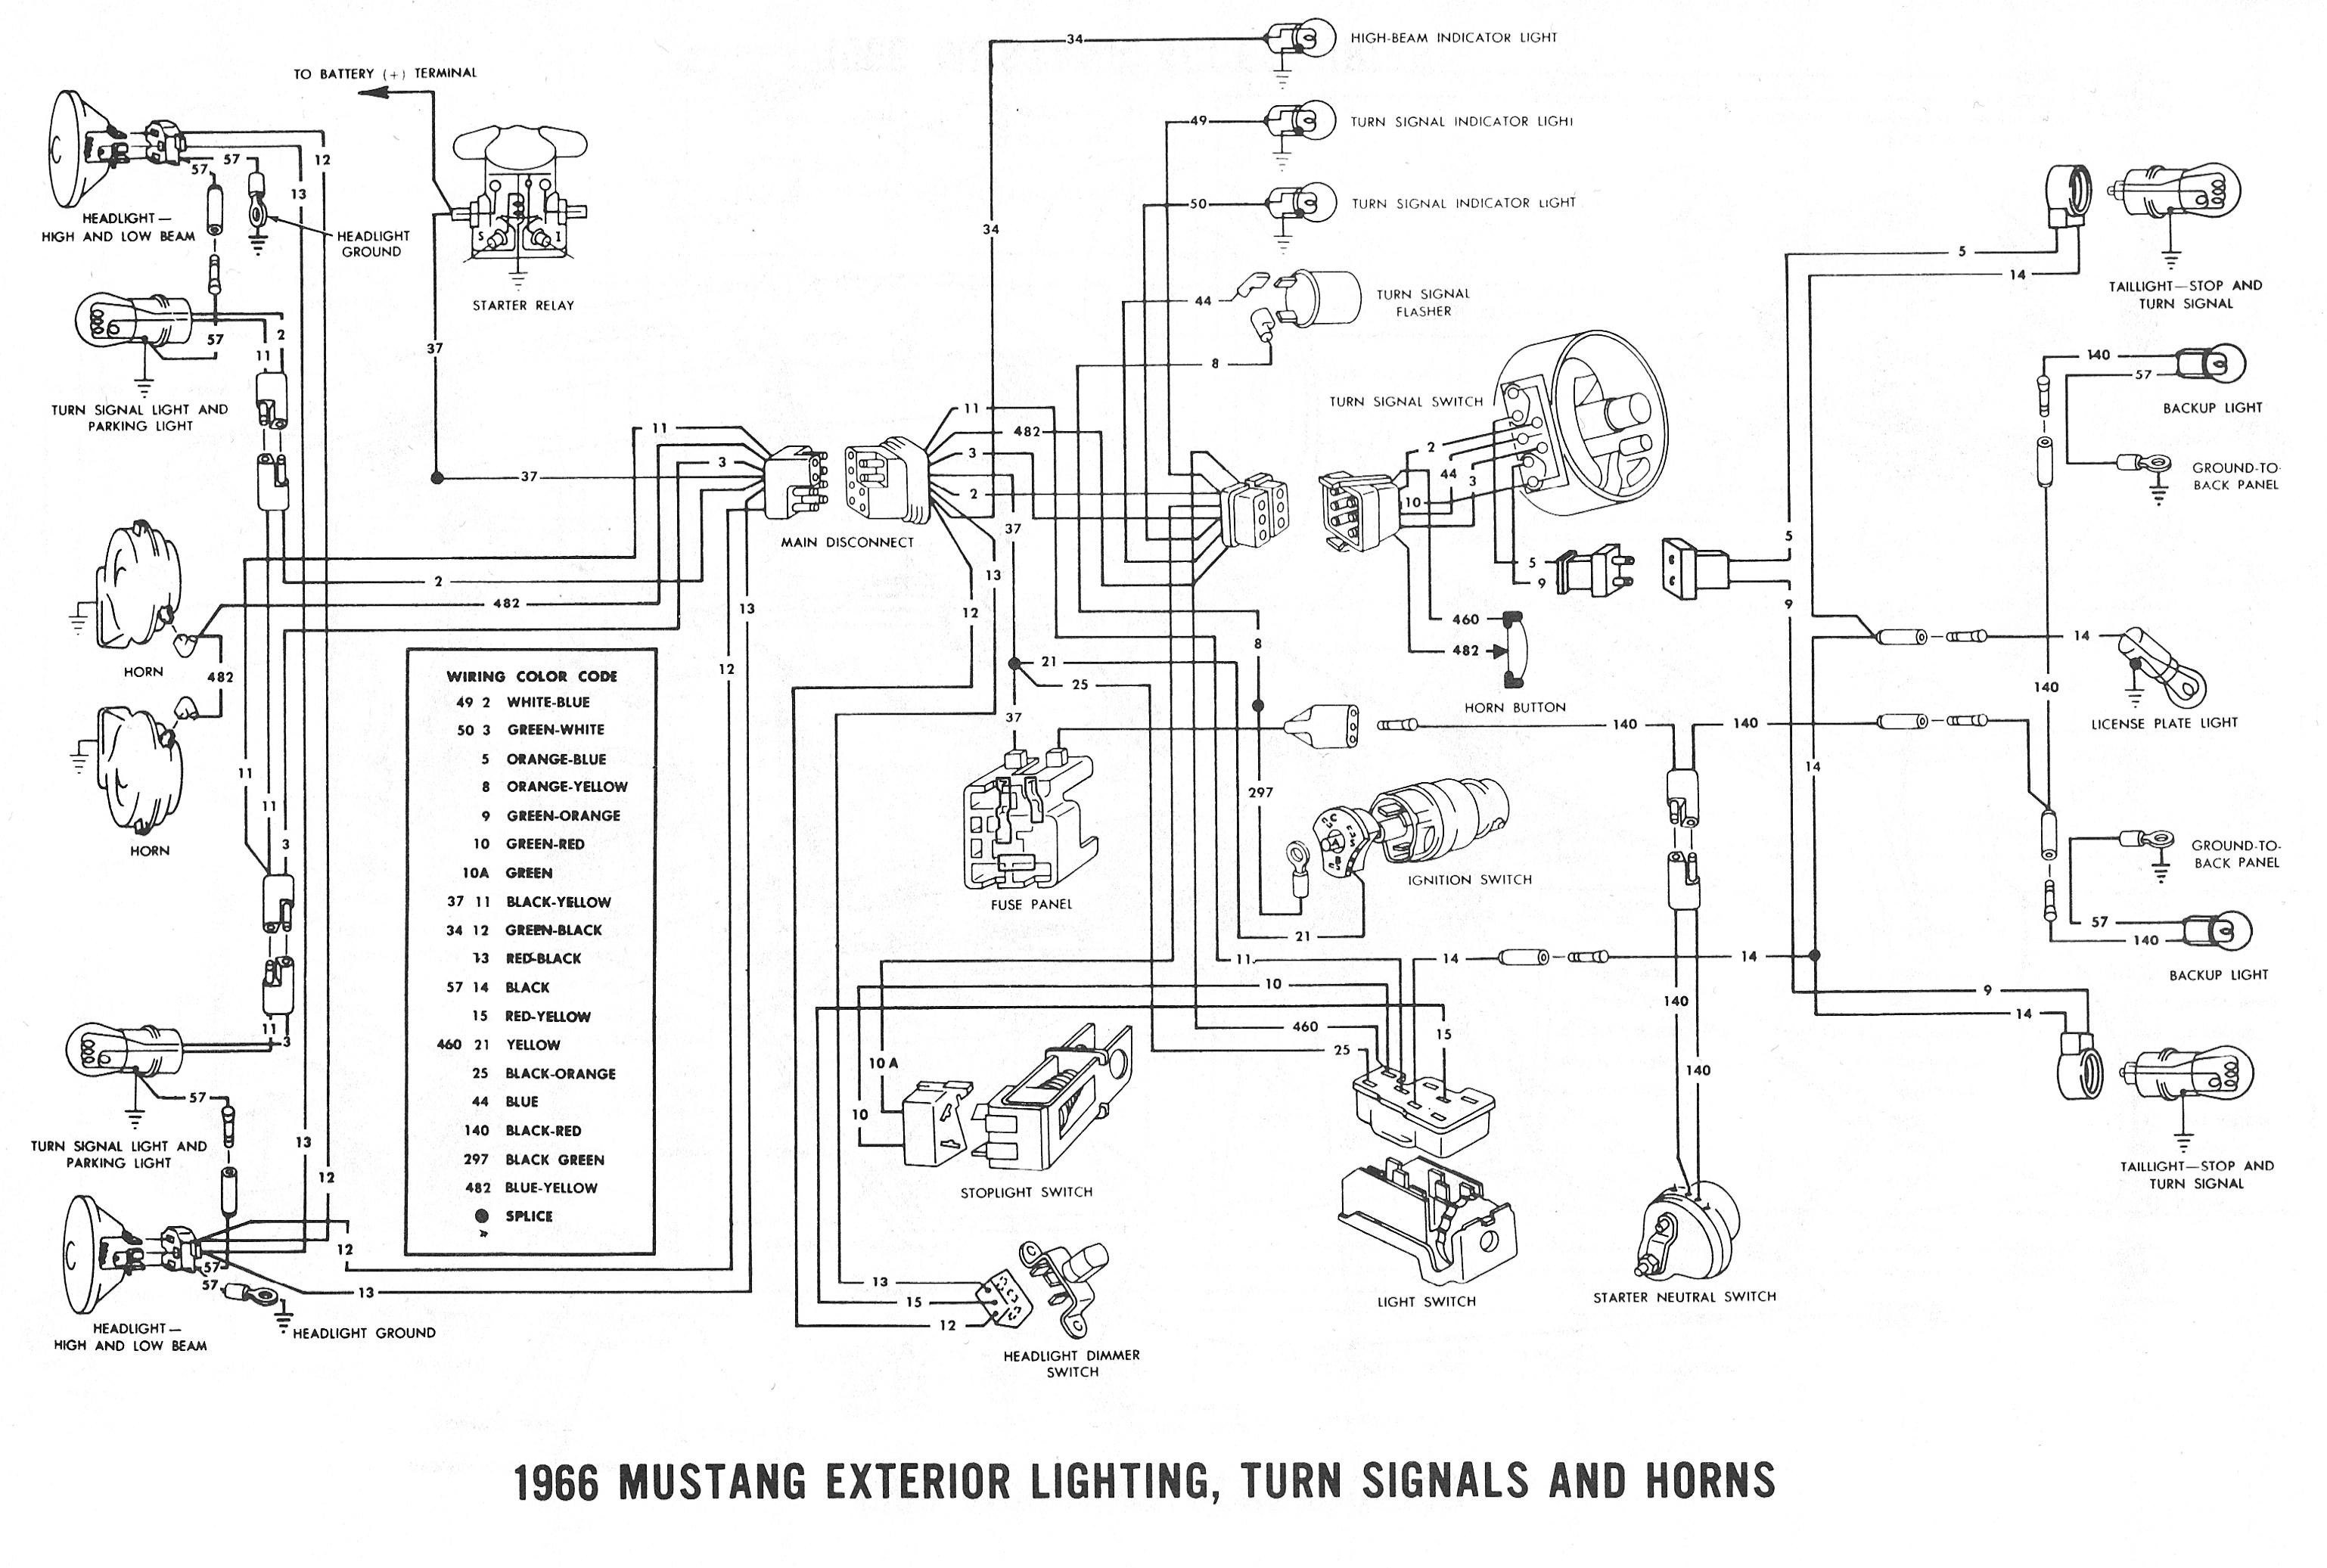 Bose Earbud    Wiring       Diagram    Sample      Wiring    Collection